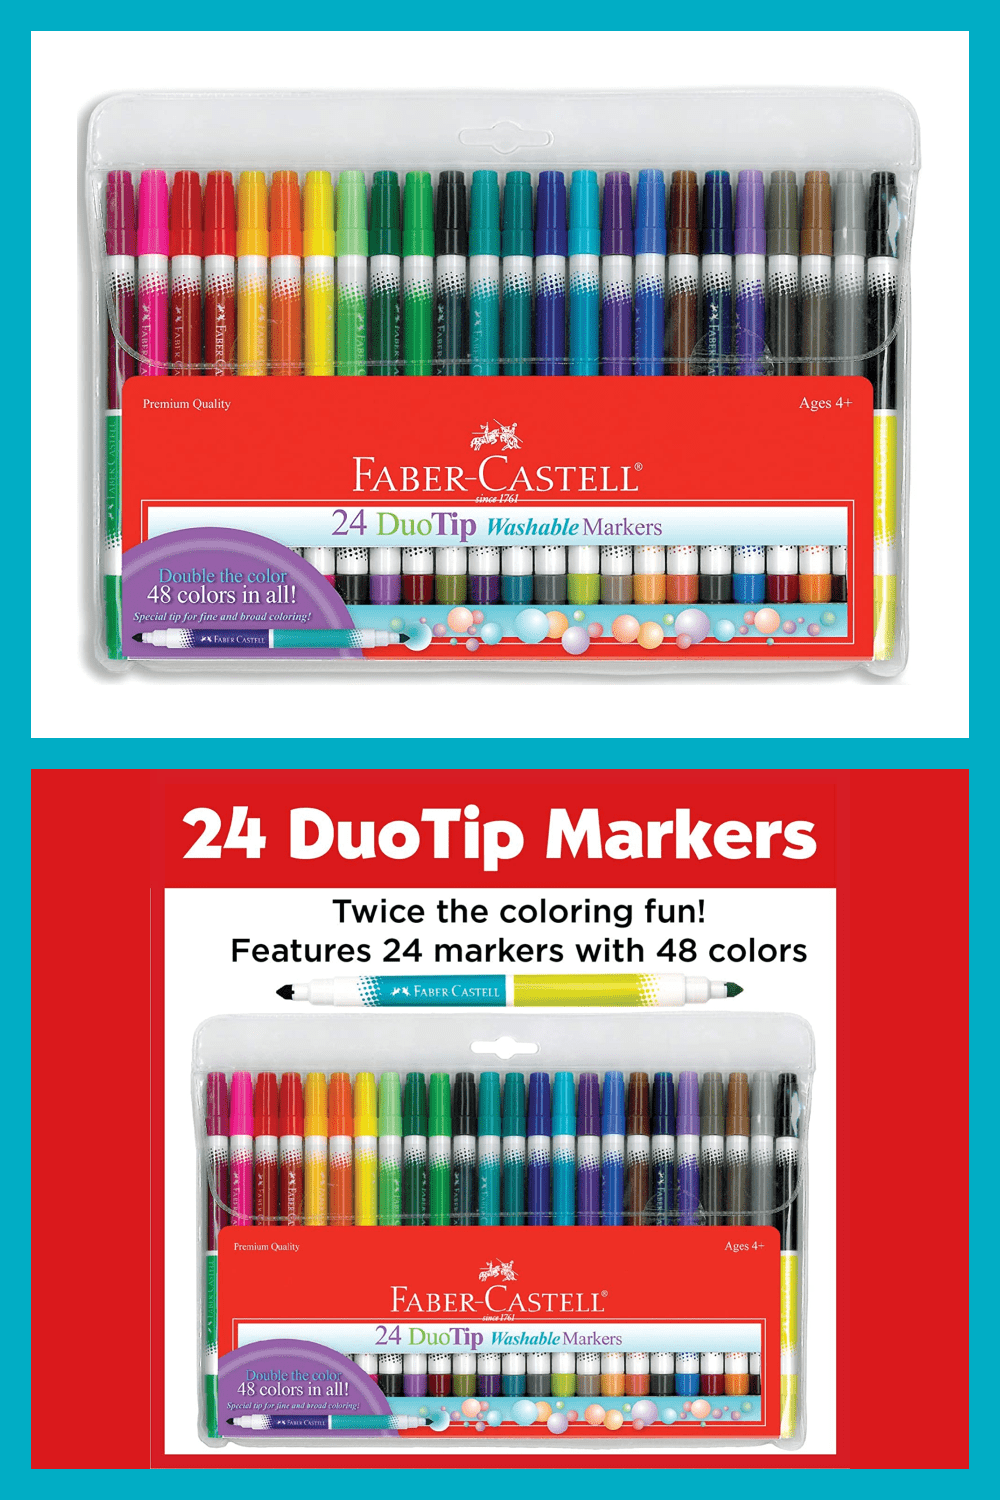 DuoTip Markers mean twice the colors for double the coloring fun. Washable ink is made from food-grade dyes.